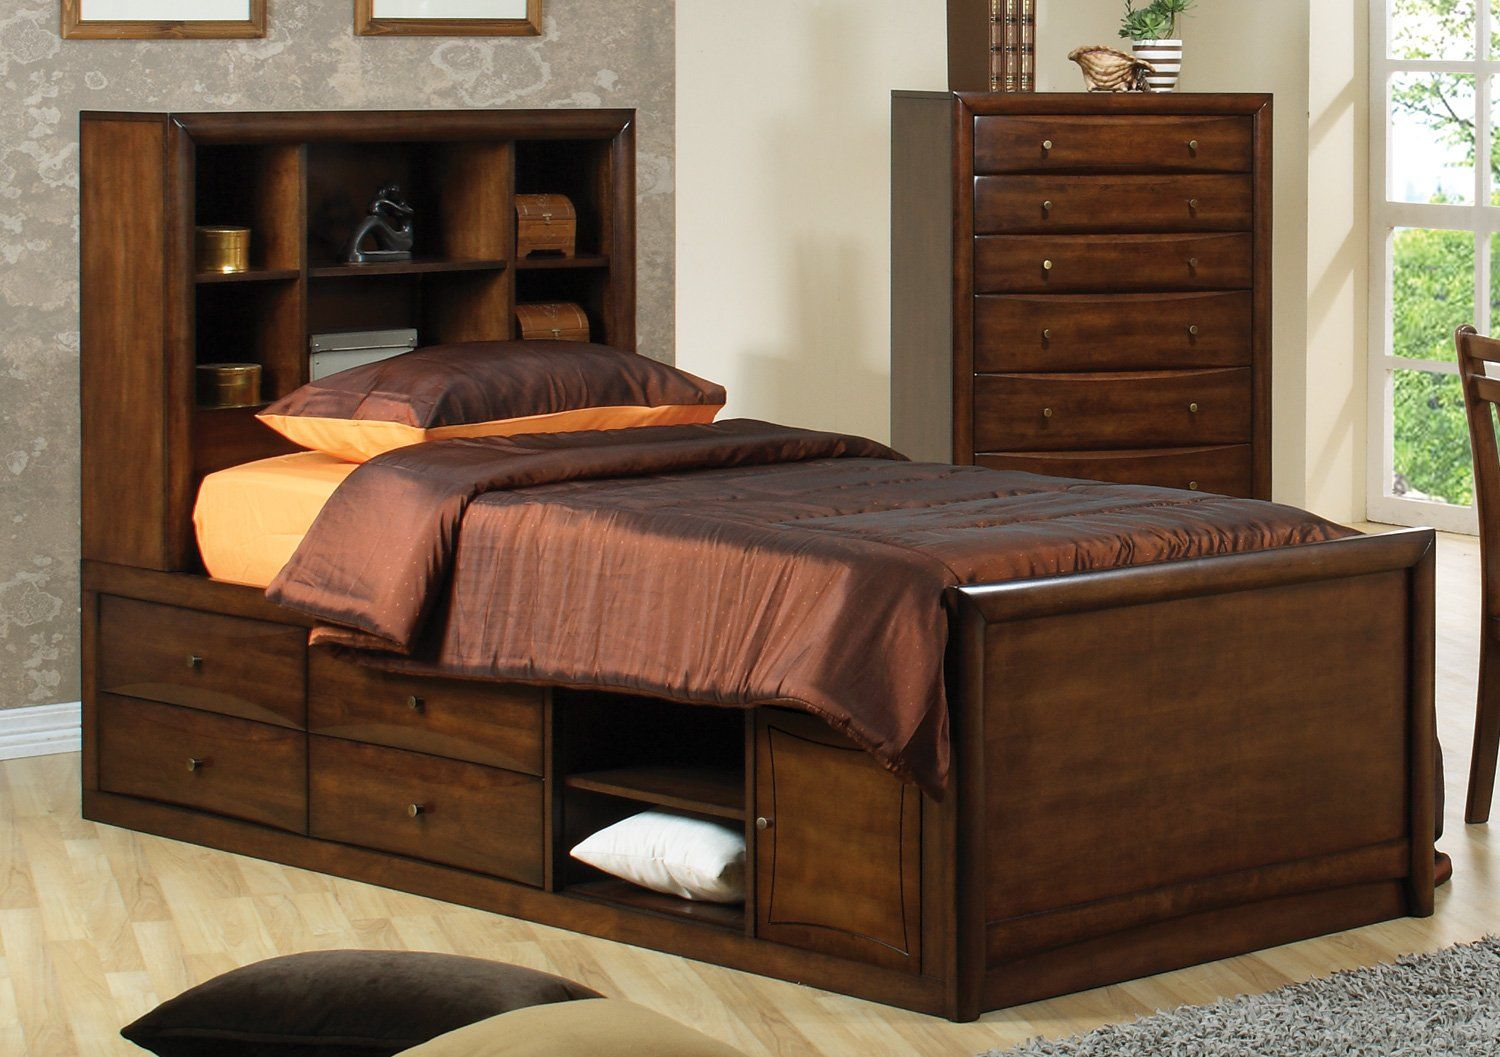 Warm Brown Transitional Hillary Collection Full Bed